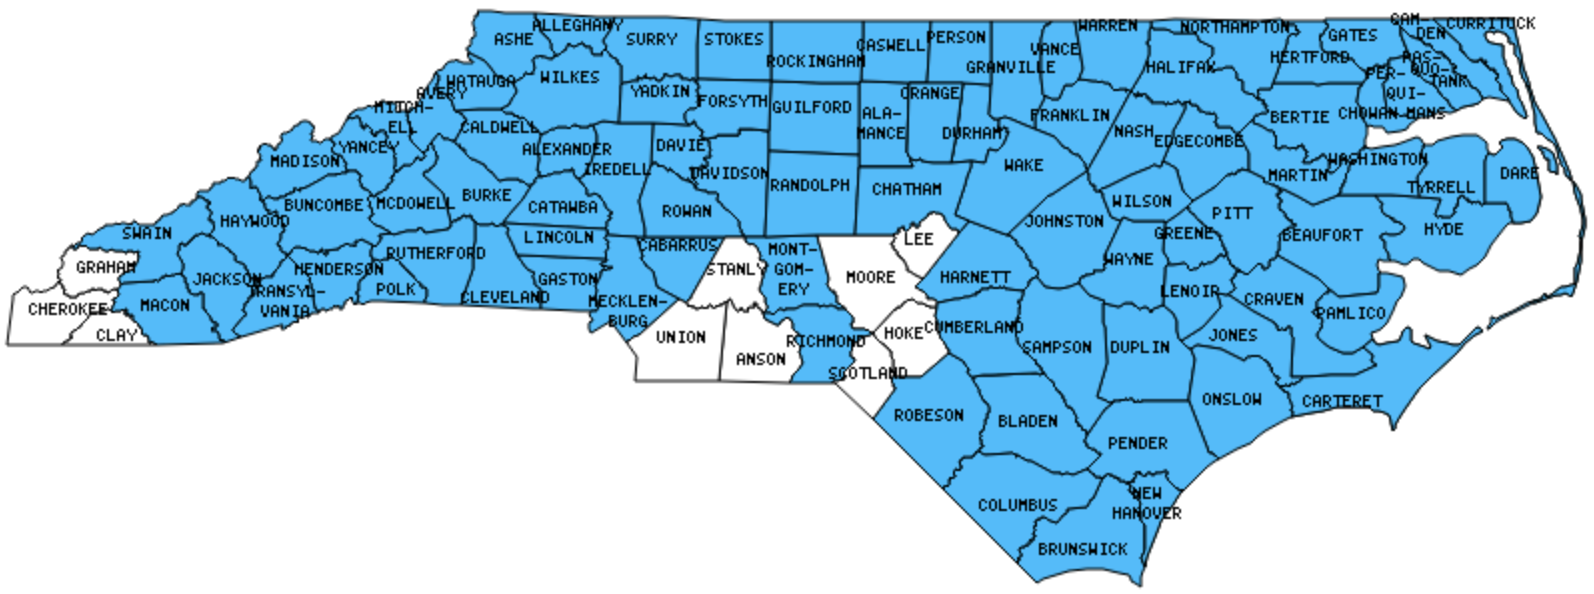 North Carolina Counties Visited With Map Highpoint Capitol And - County map north carolina